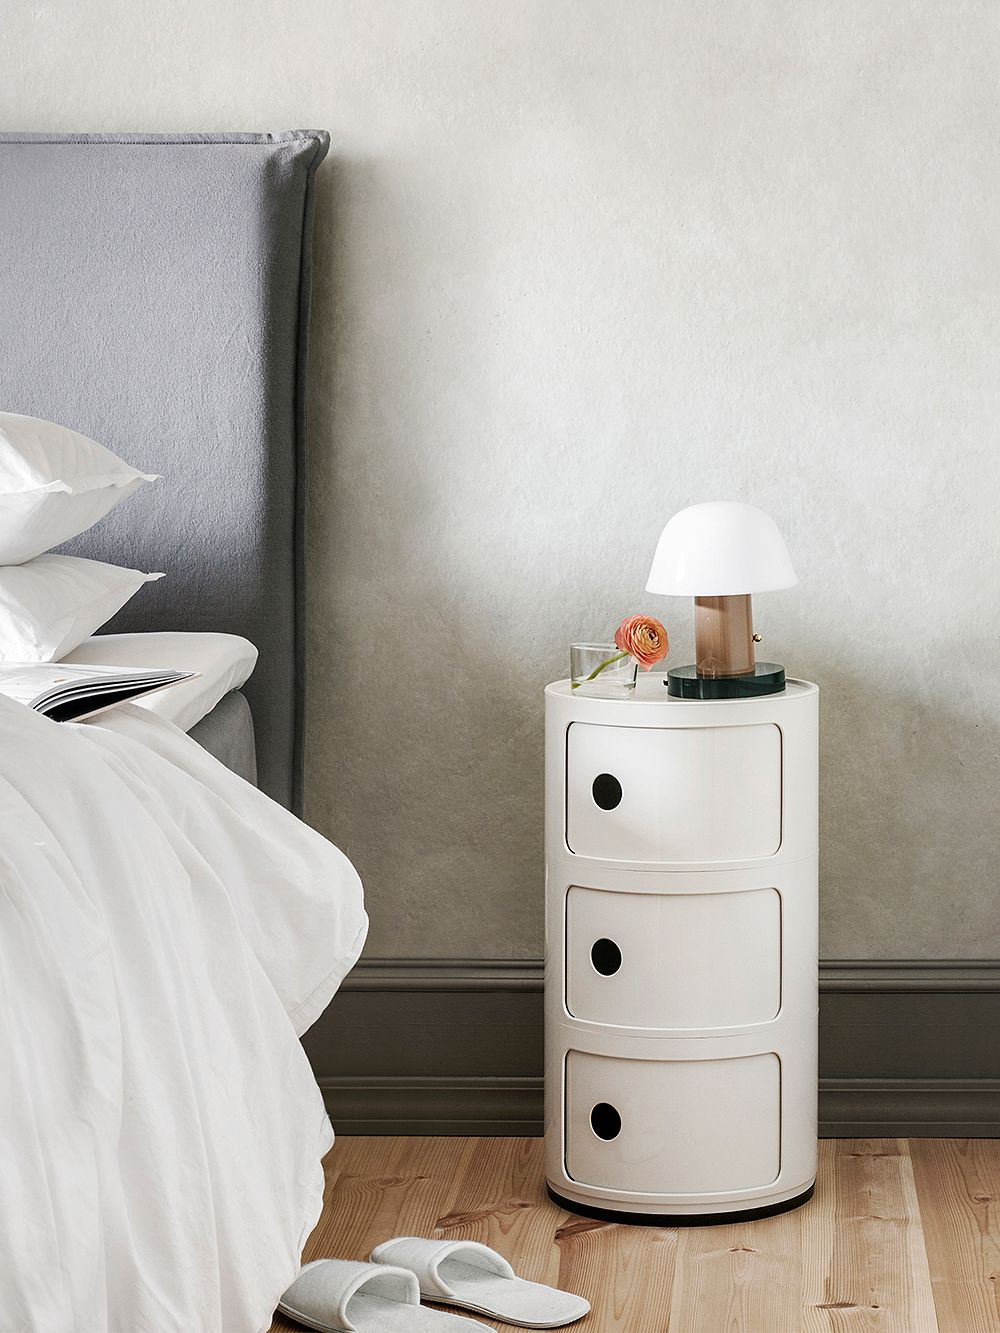 Kartell's Componibili storage unit in a bedroom.